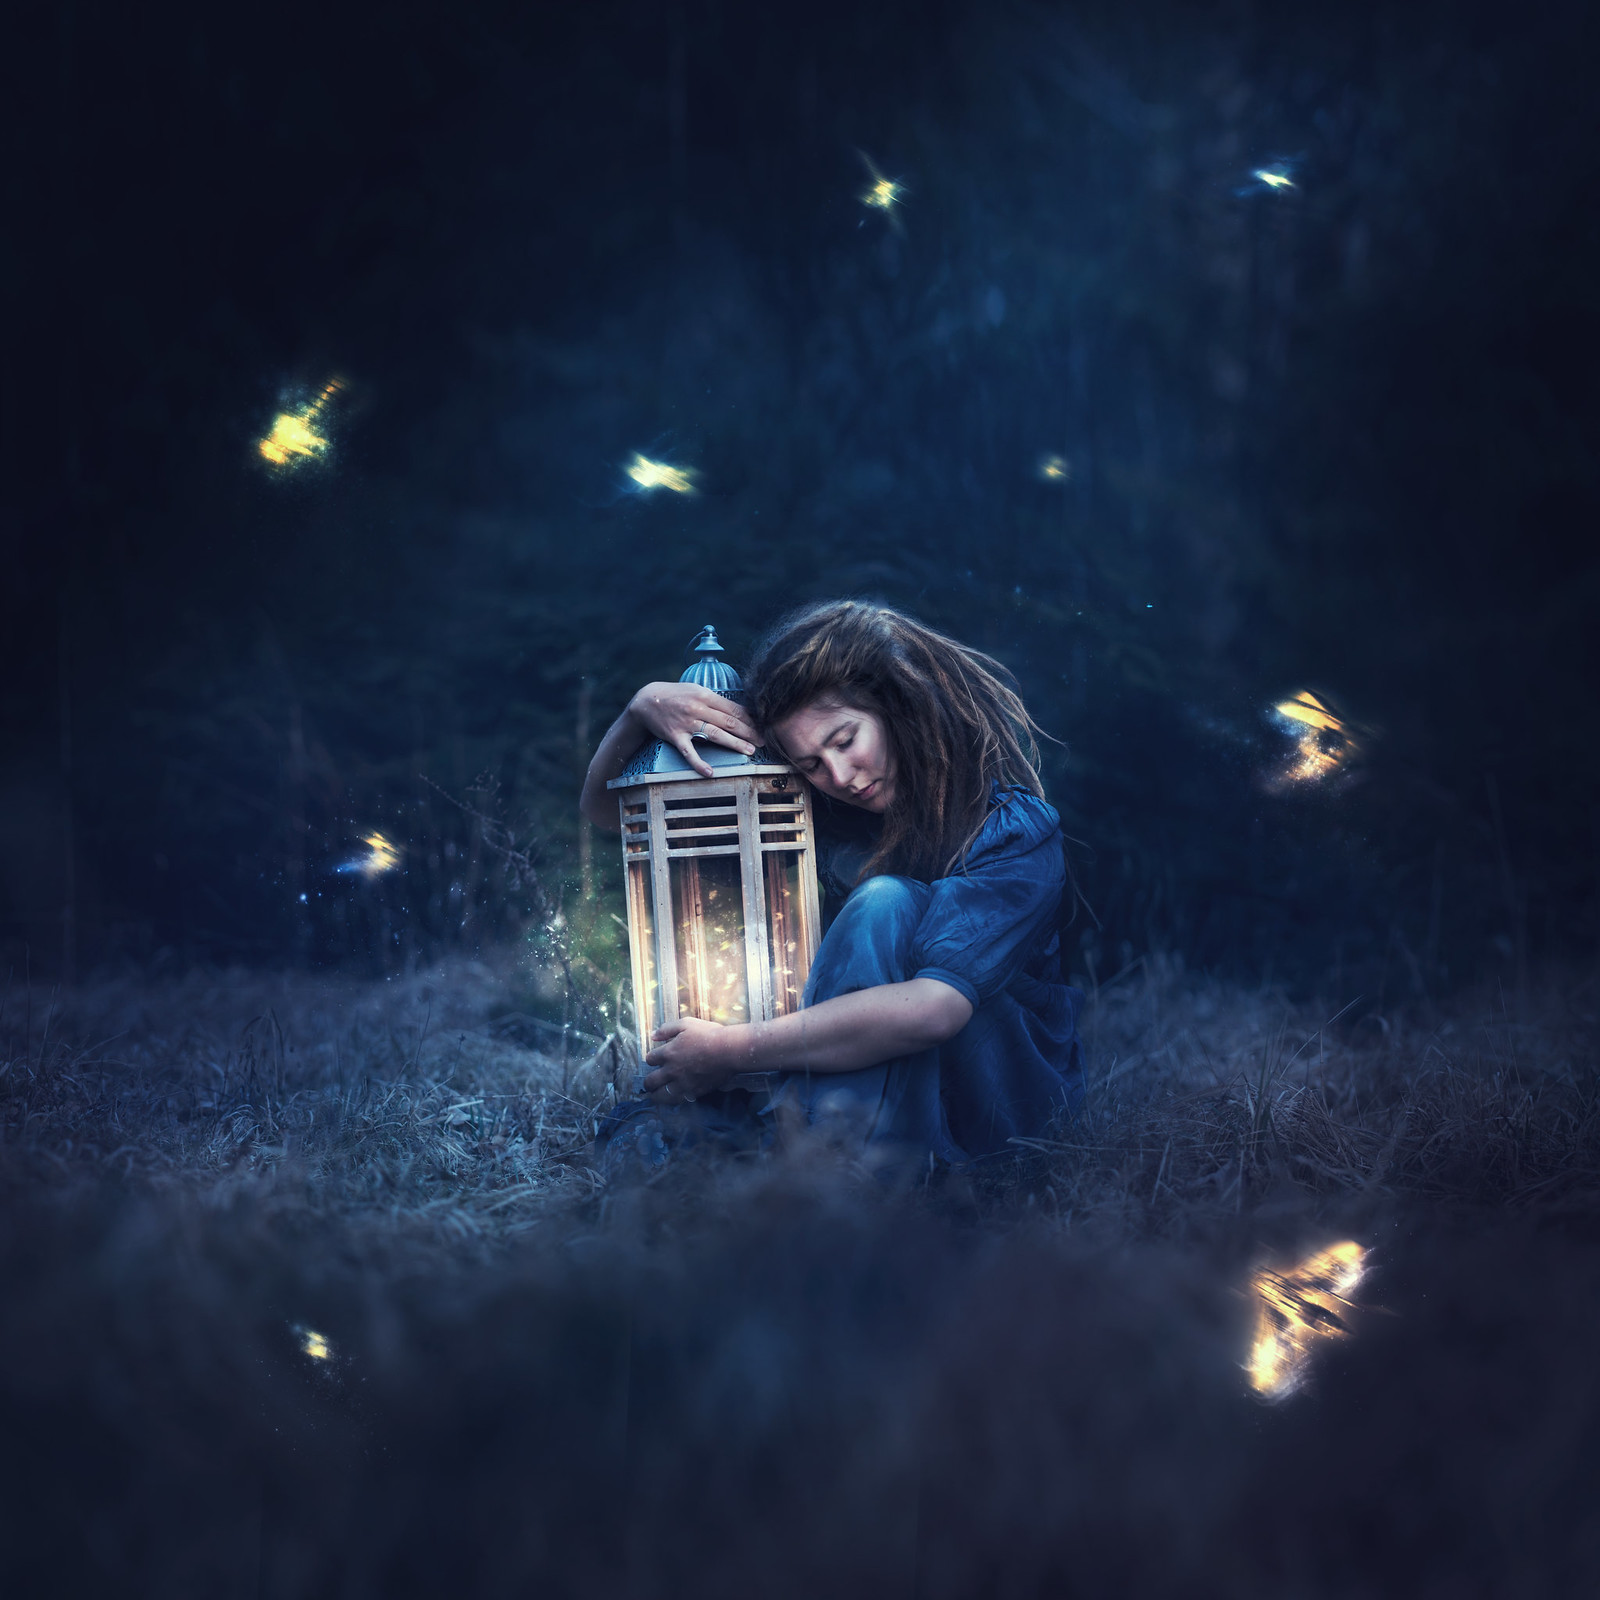 Fantasy self-portrait of a girl holding a lamp in the dark surrounded by fireflies.